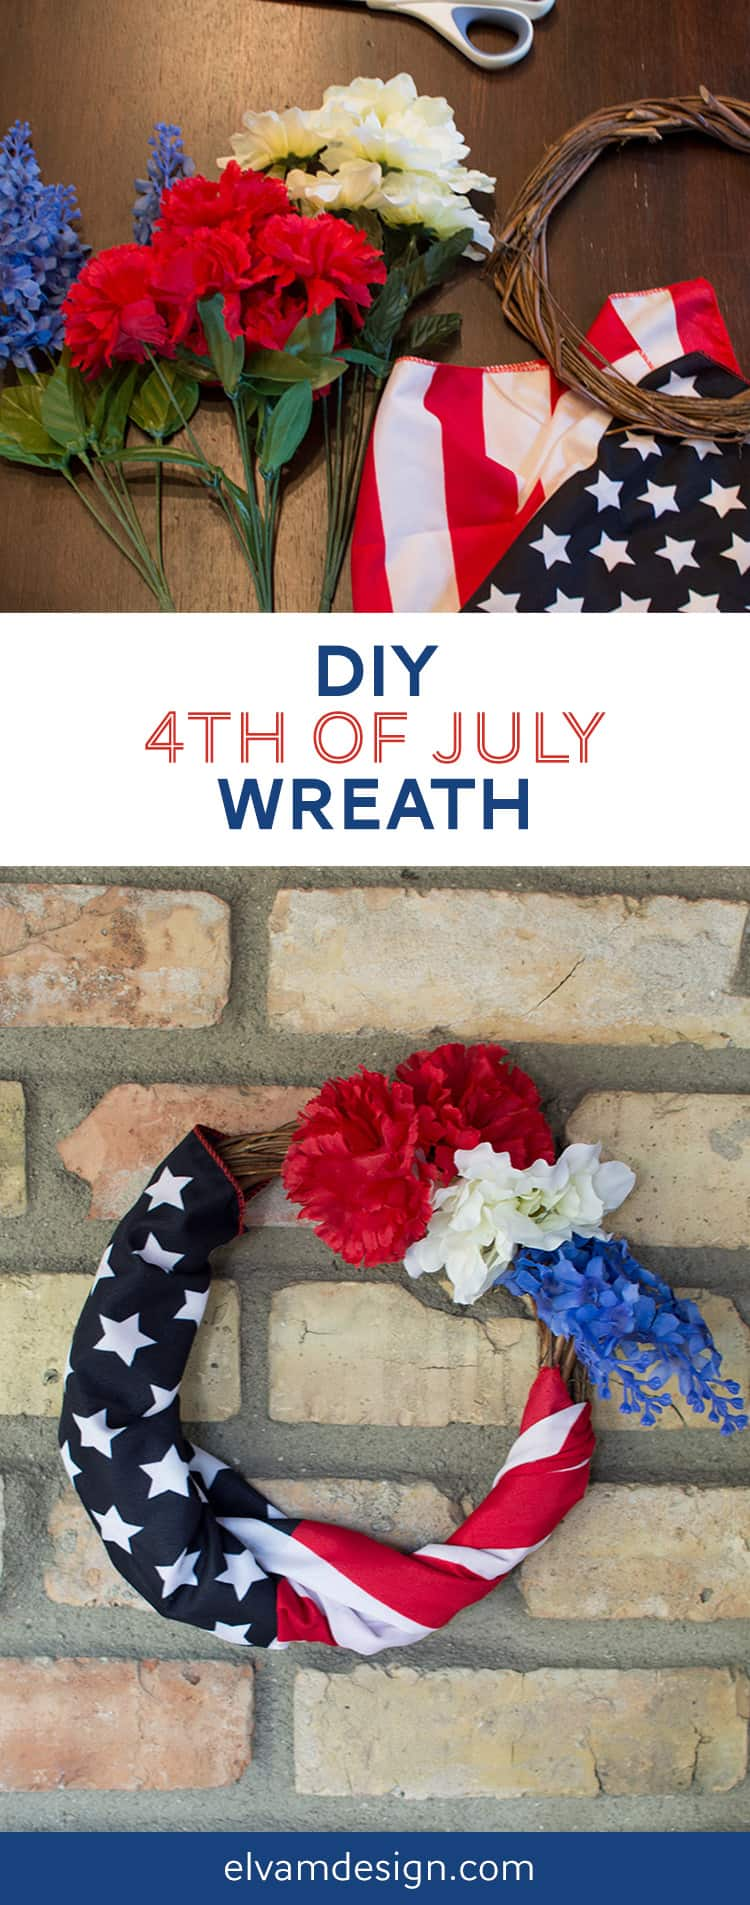 DIY 4th of July Wreath Tutorial from Elvamdesign.com